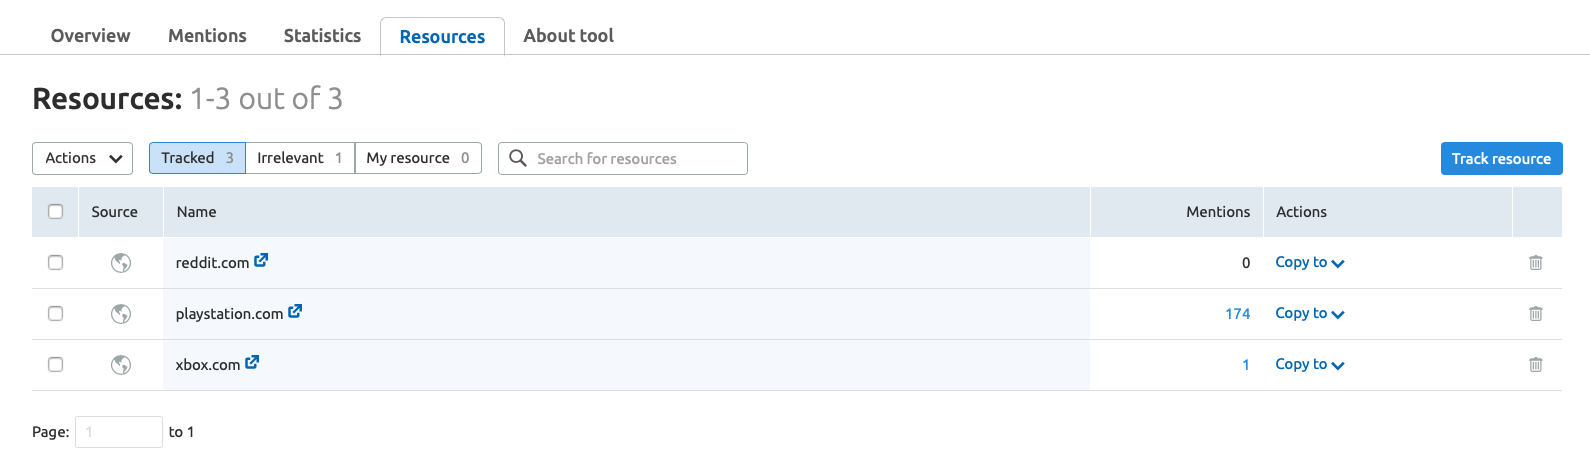 Tracking resources in Brand Monitoring tool